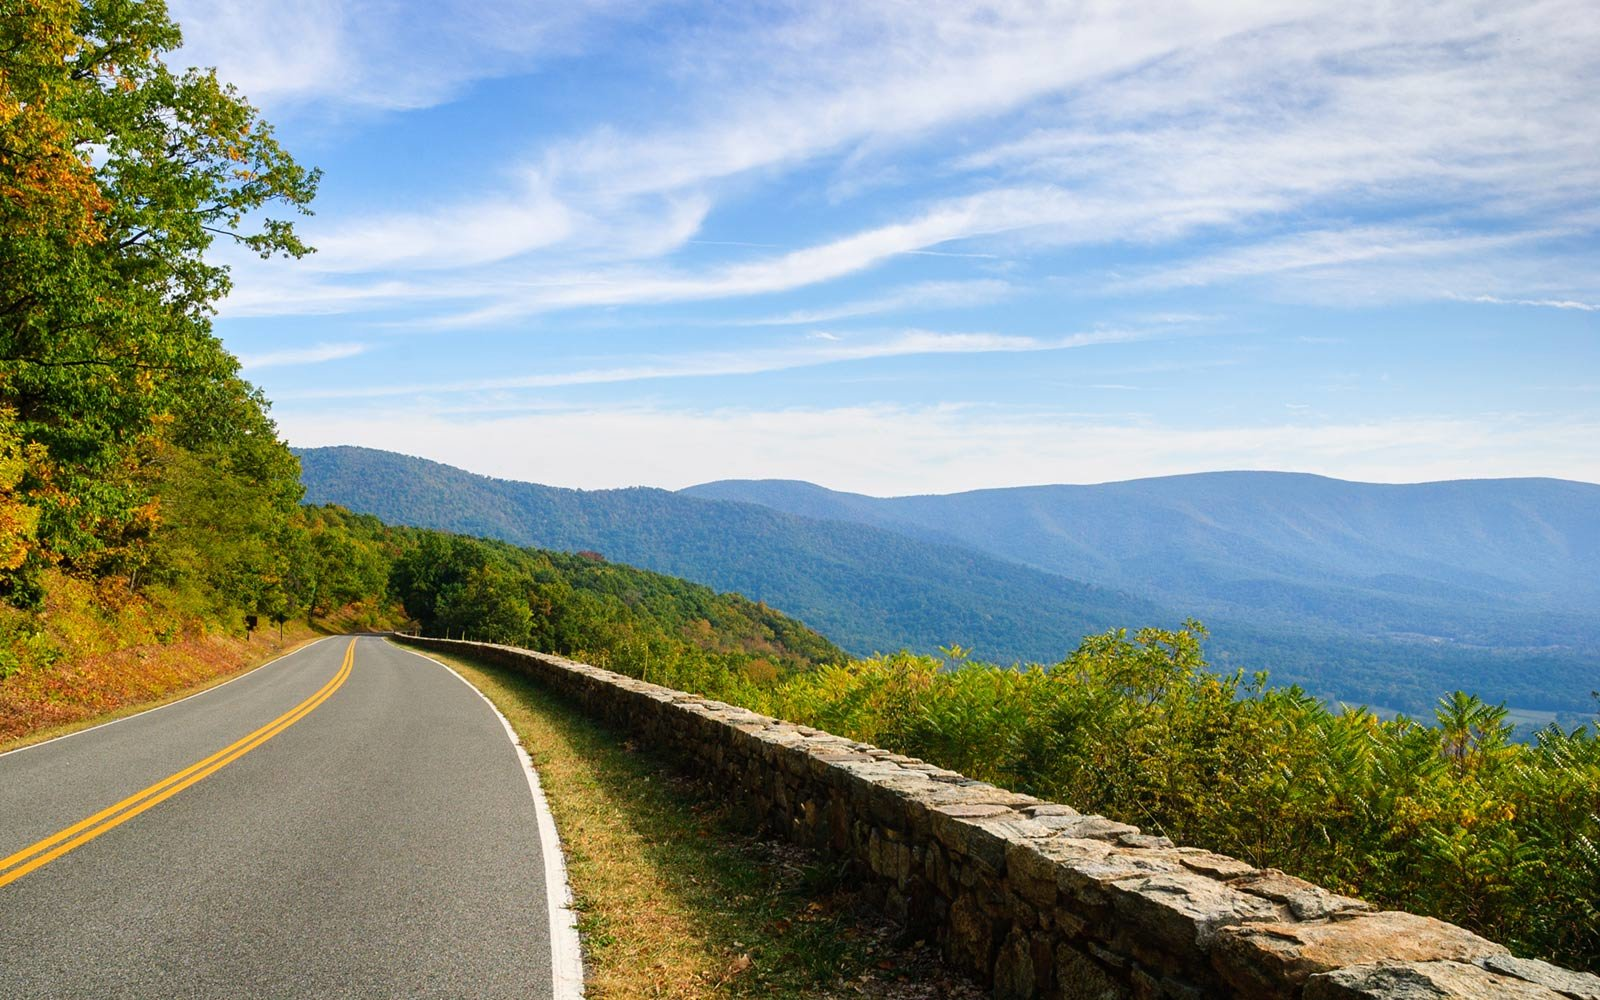 shenandoah-national-park-virginia-skyline-drive-SPRINGRT0319.jpg